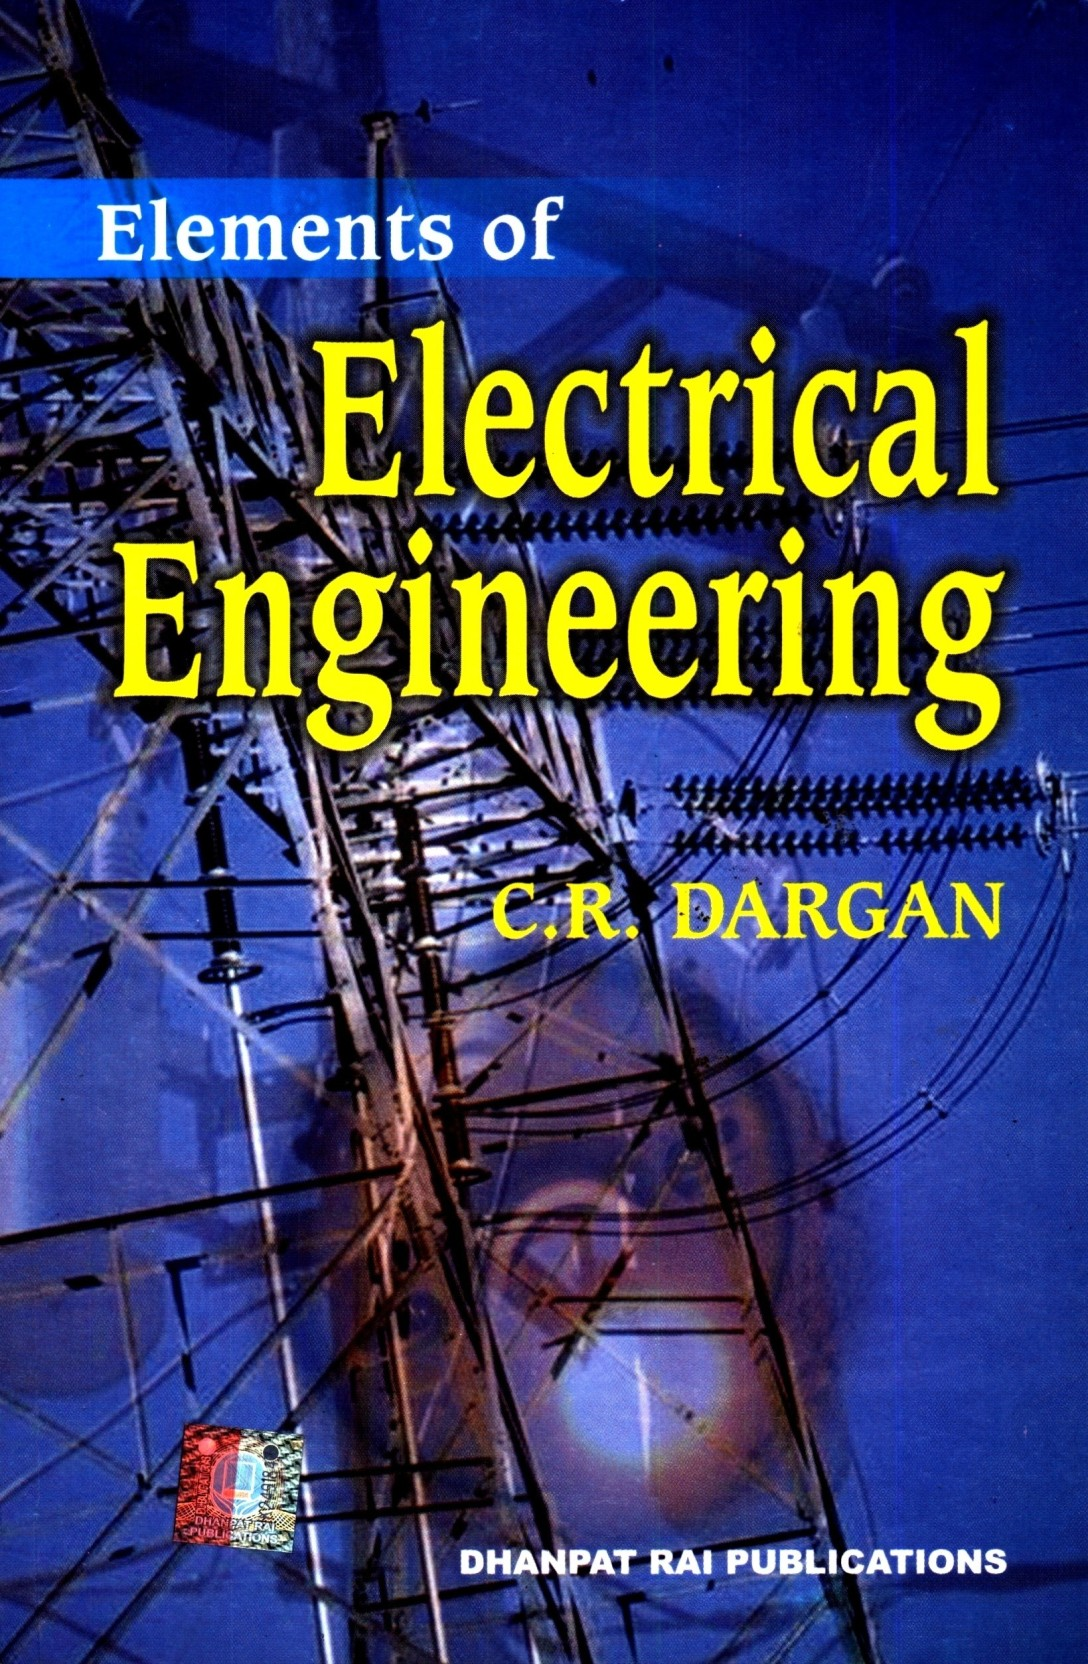 Elements Of Electrical Engineering Buy House Wiring Book In Hindi Add To Cart